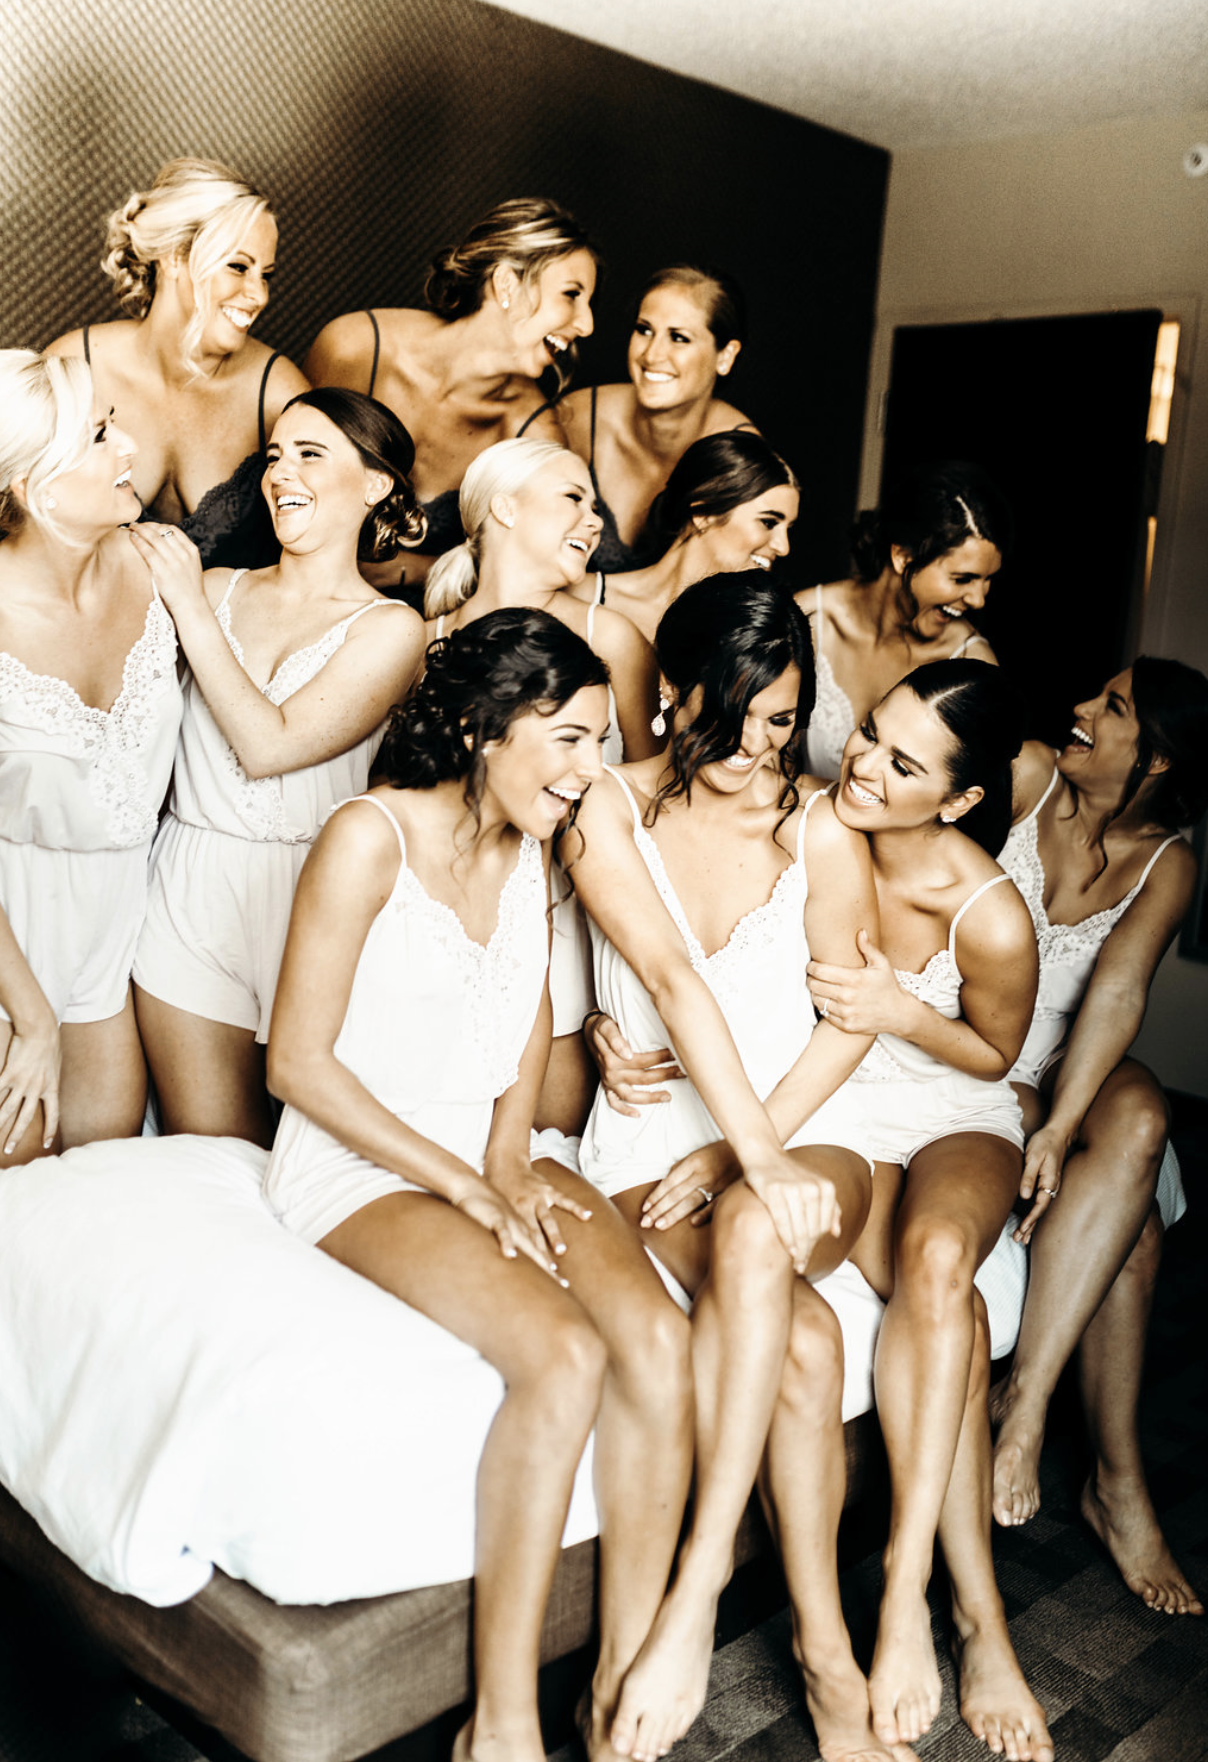 Valerie-and-TJ-McConnell-Wedding-Coordination-by-Cassandra-Clair-Event-Prep-Pittsburgh-Wedding-11.png